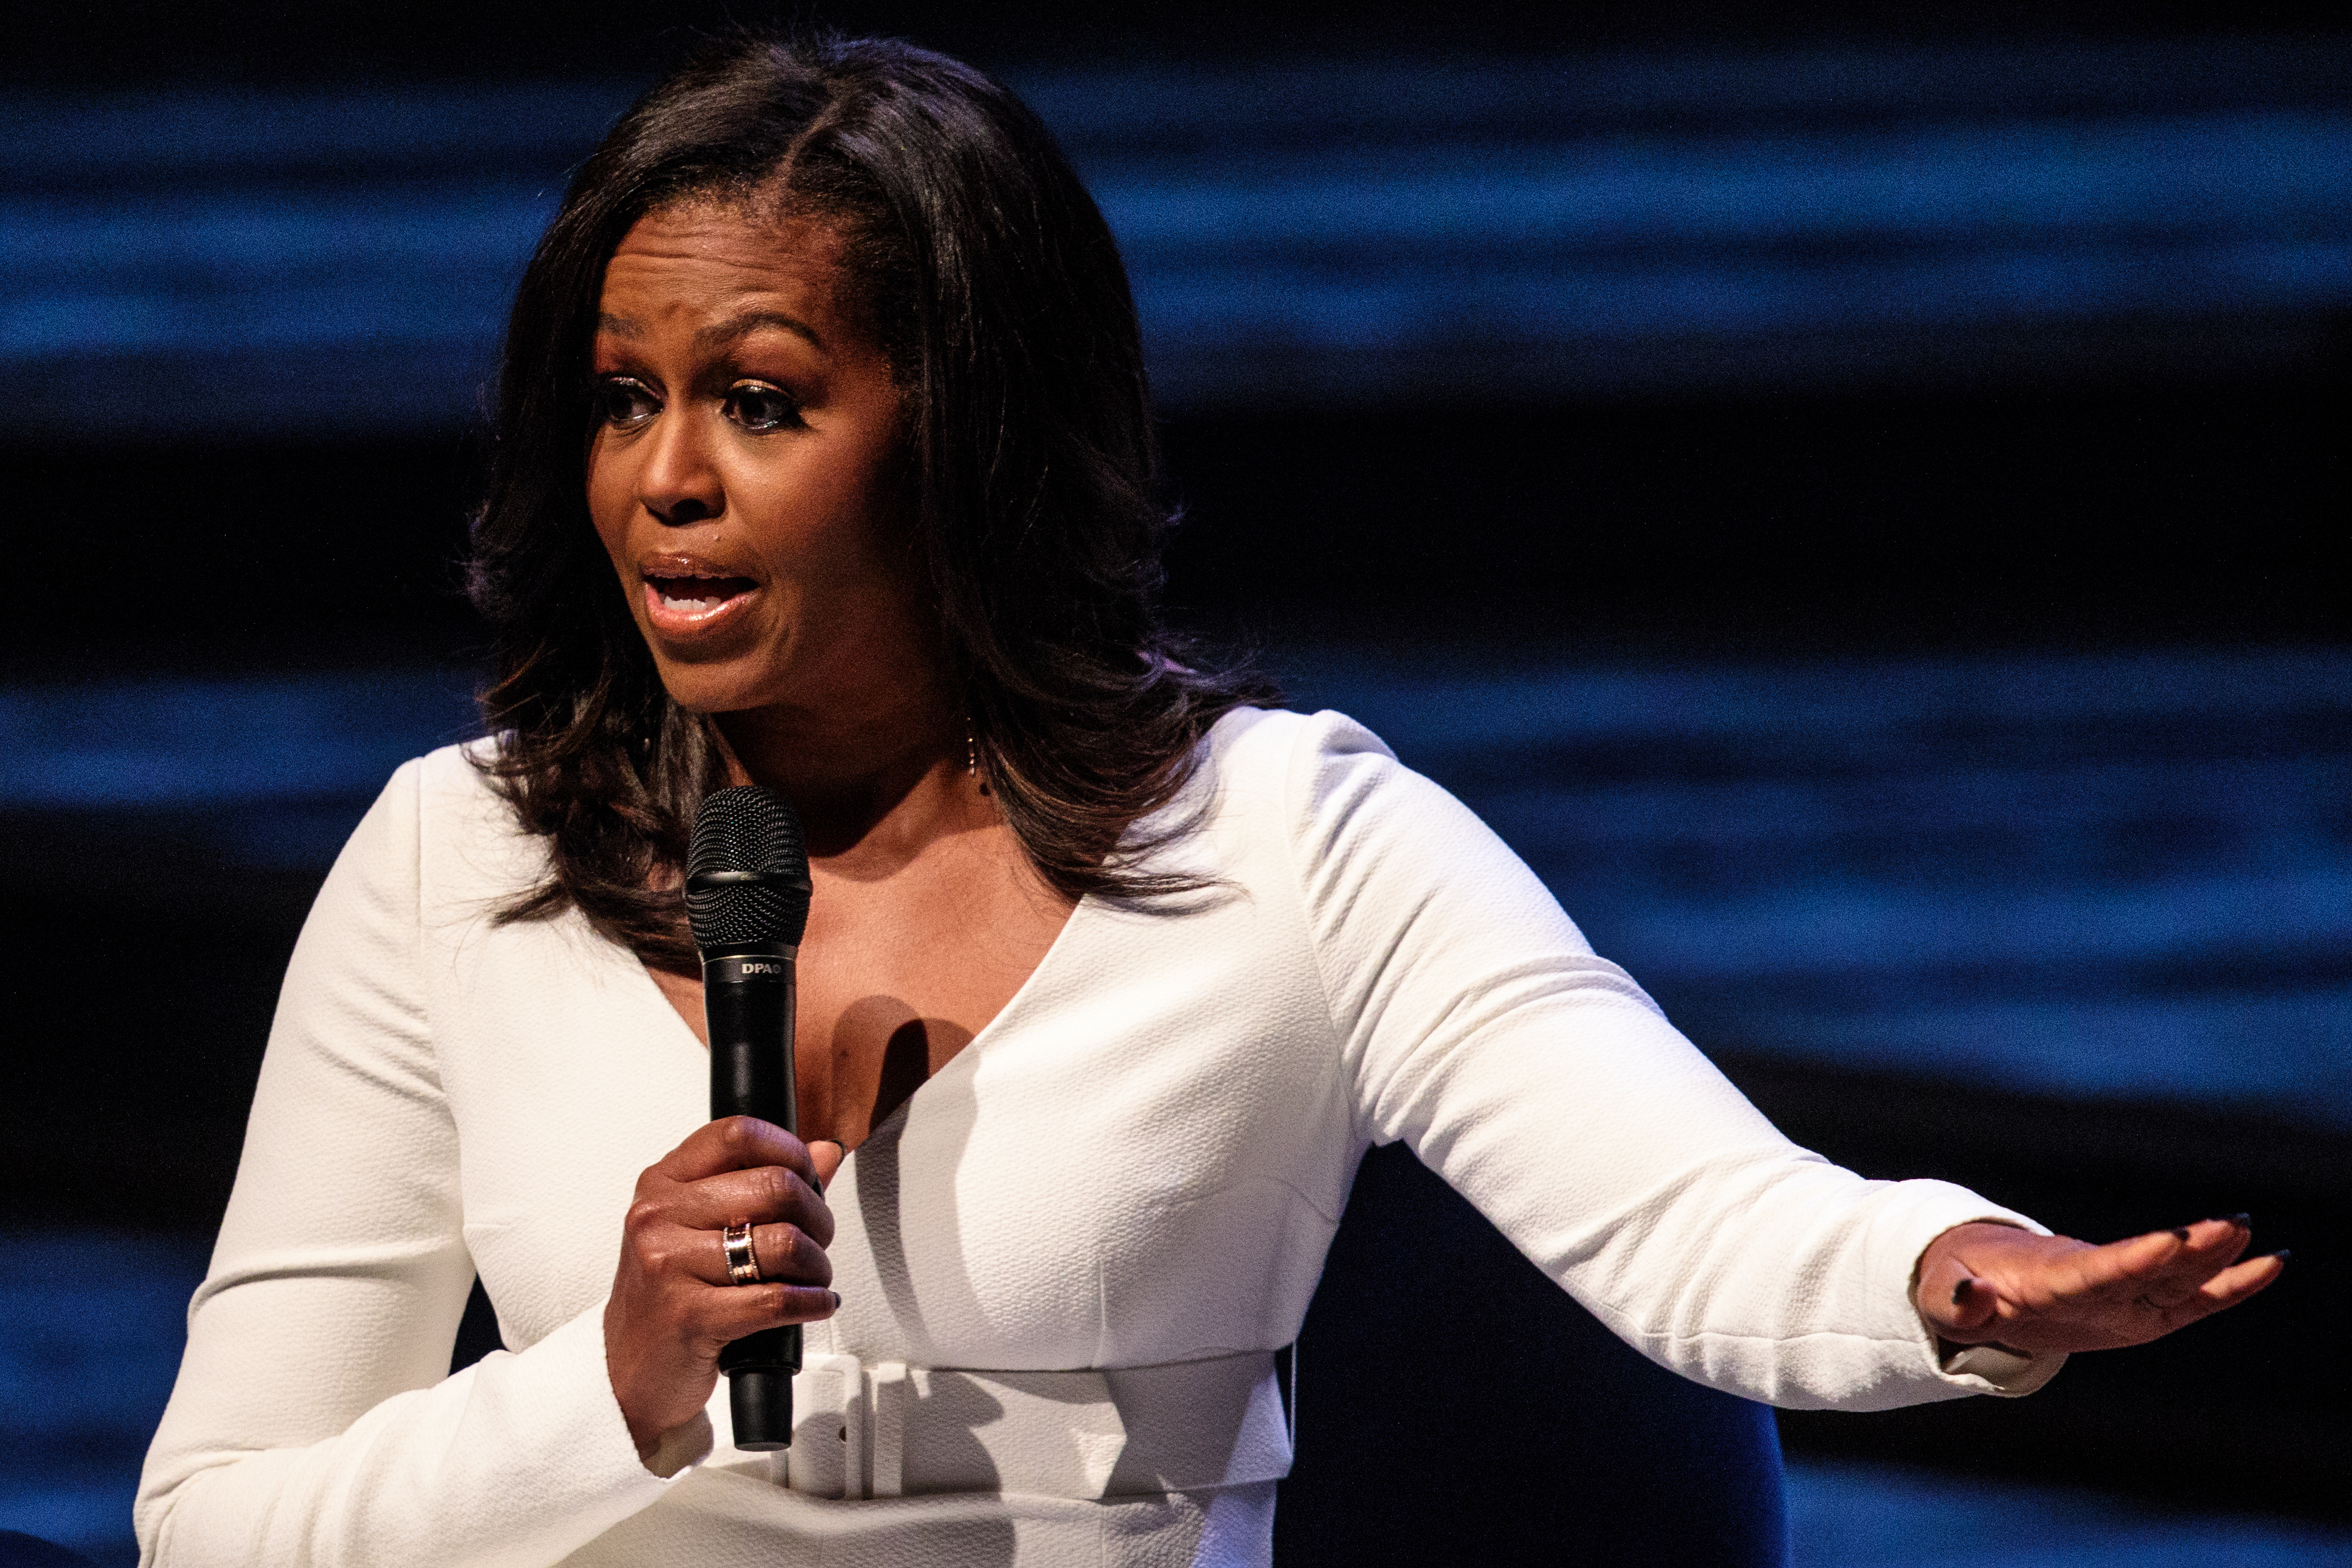 Former U.S. First Lady Michelle Obama speaks at The Royal Festival Hall on December 03, 2018 in London, England. (Getty)